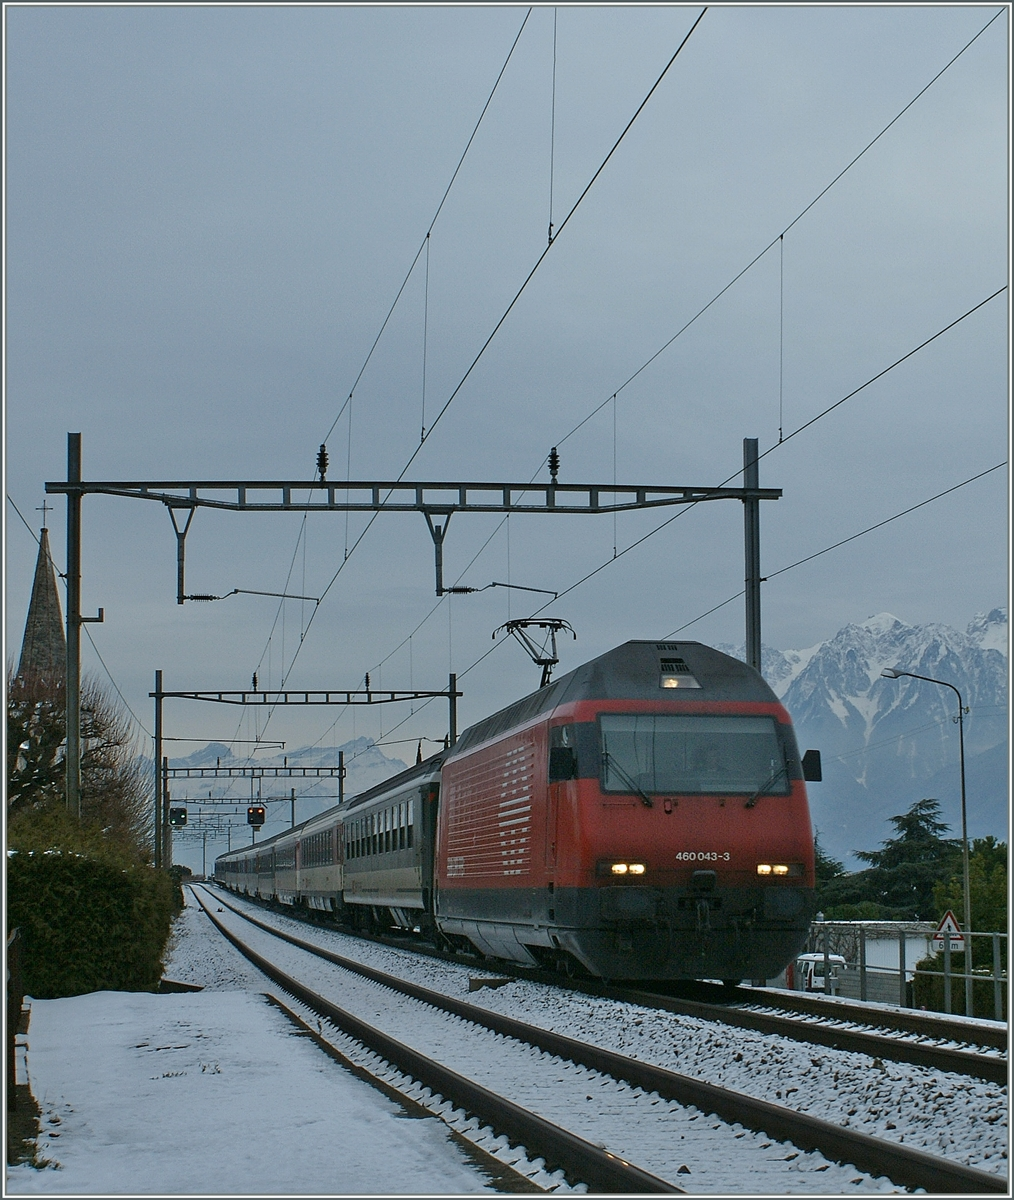 The SBB Re 460 043-3 by Villette VD.